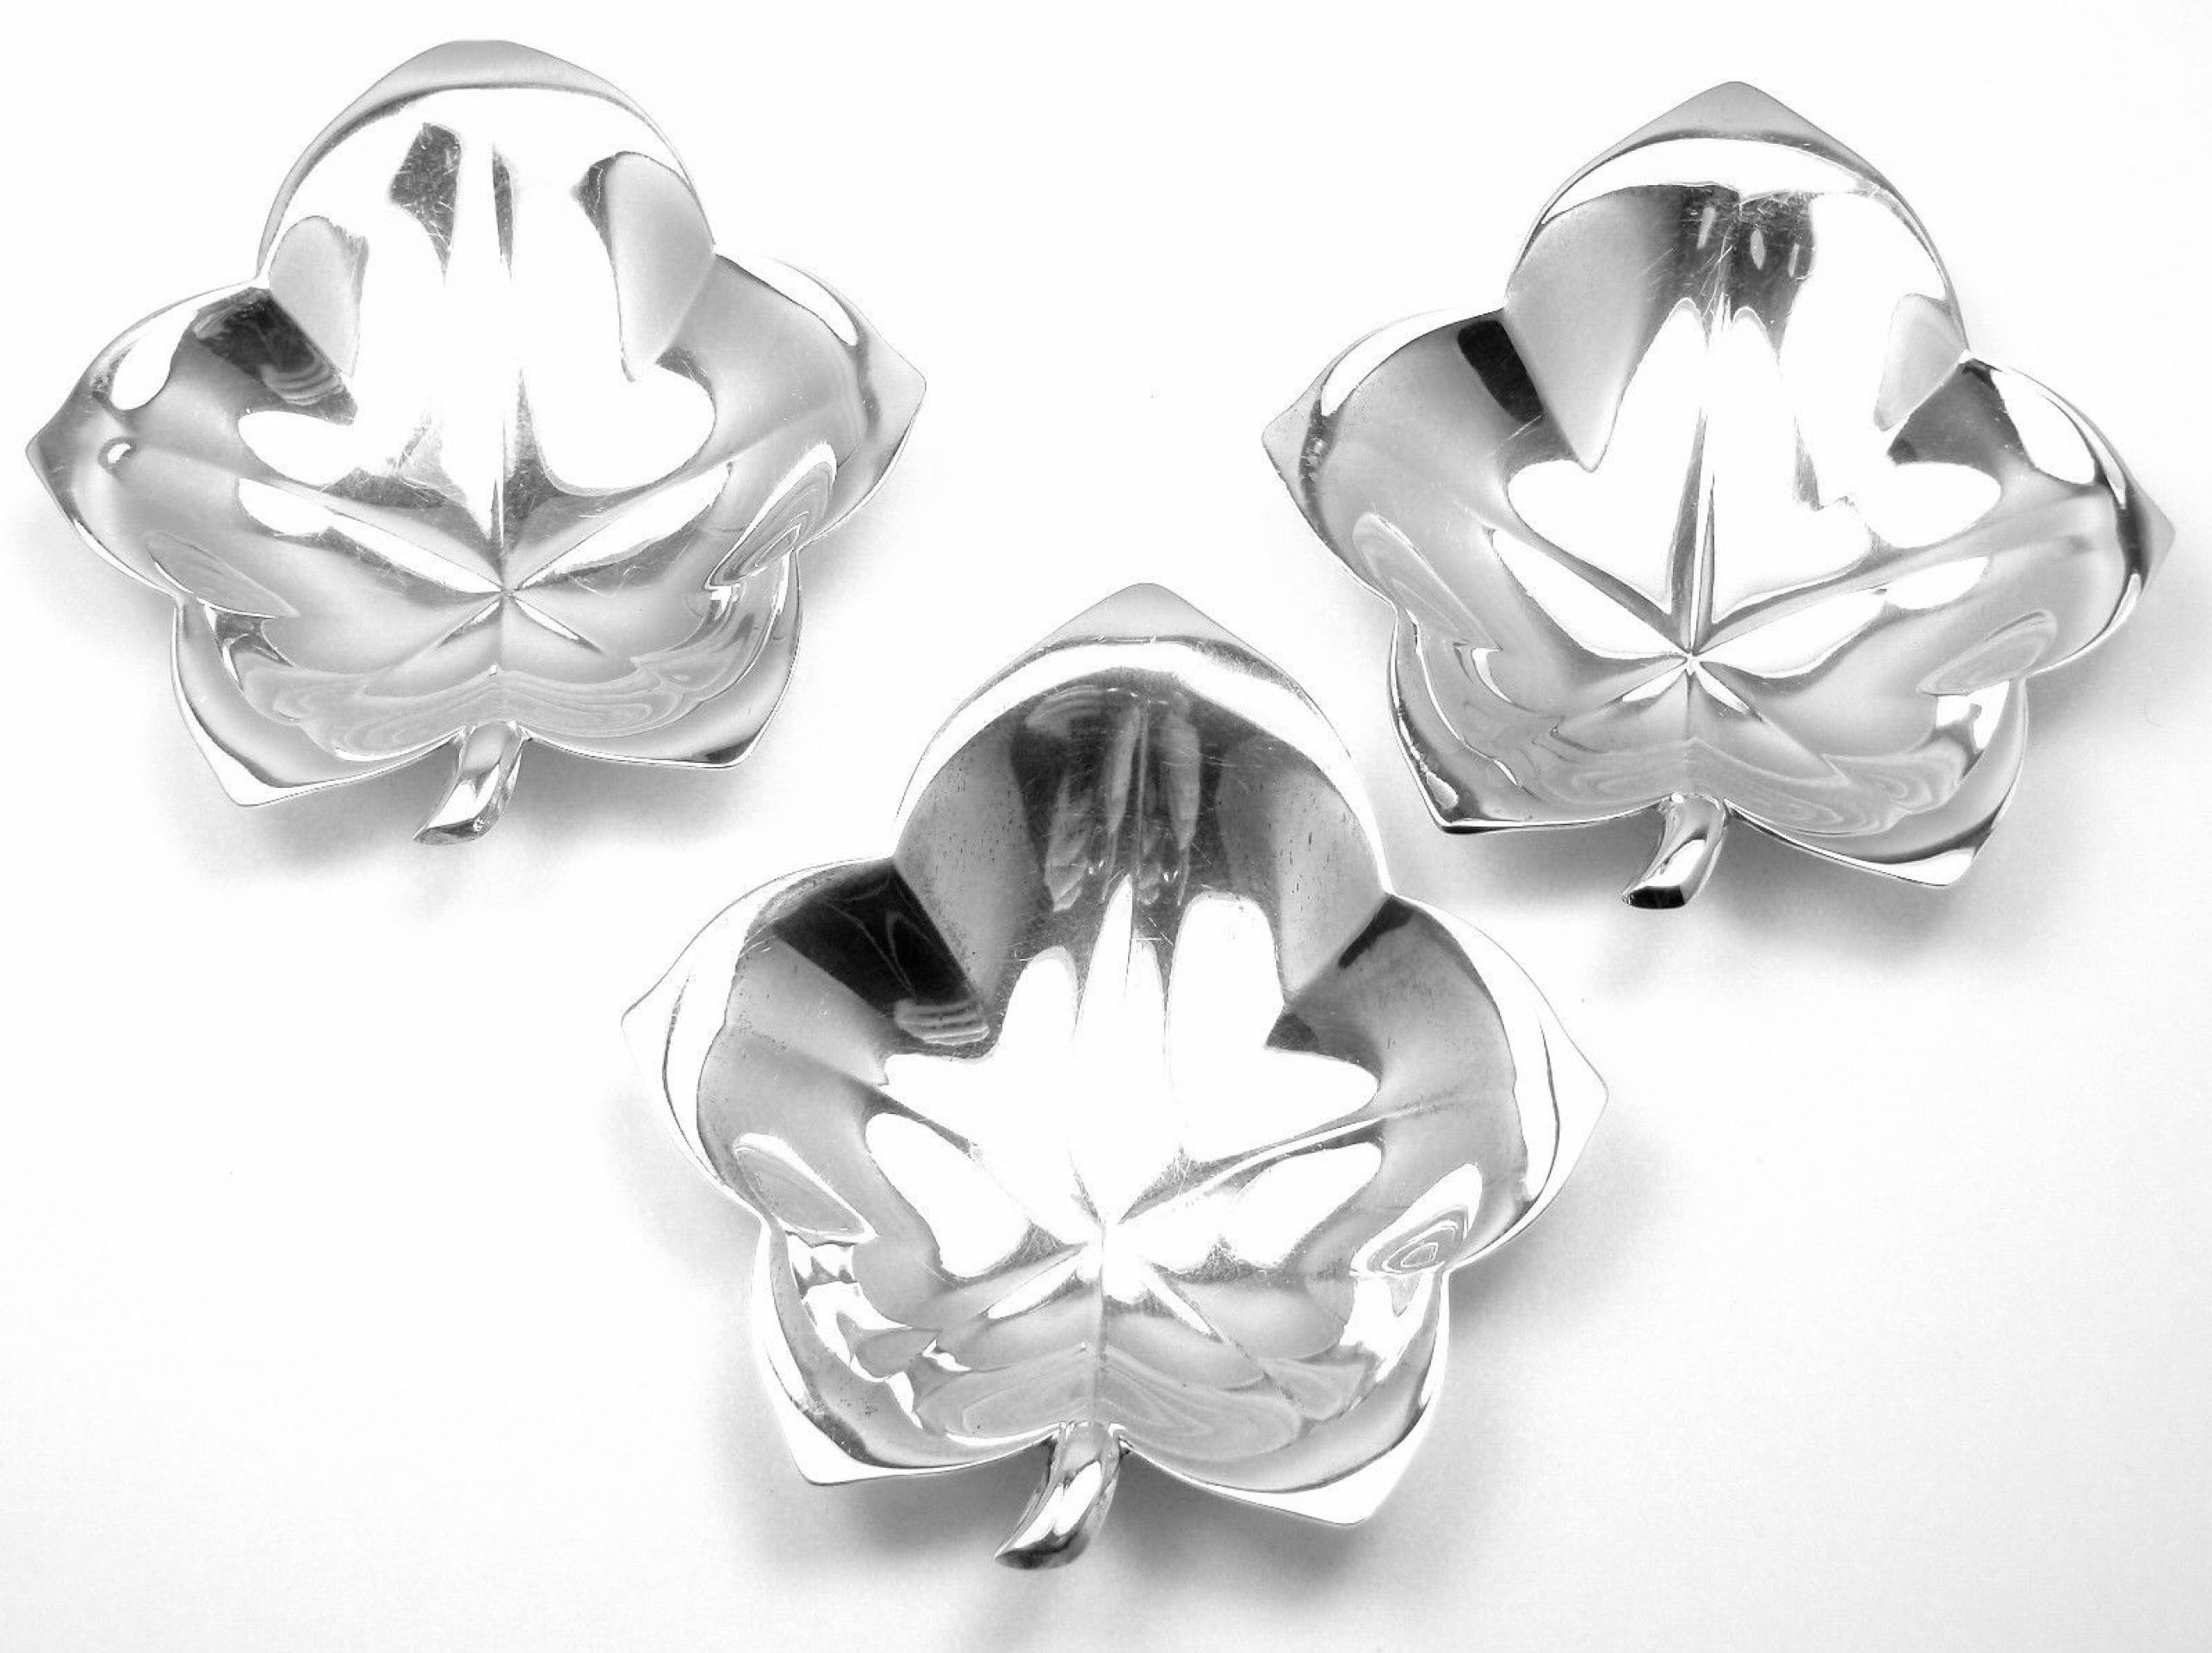 AUTHENTIC! 3 SET TIFFANY & CO STERLING SILVER LEAF SHAPE CANDY AND NUT DISH